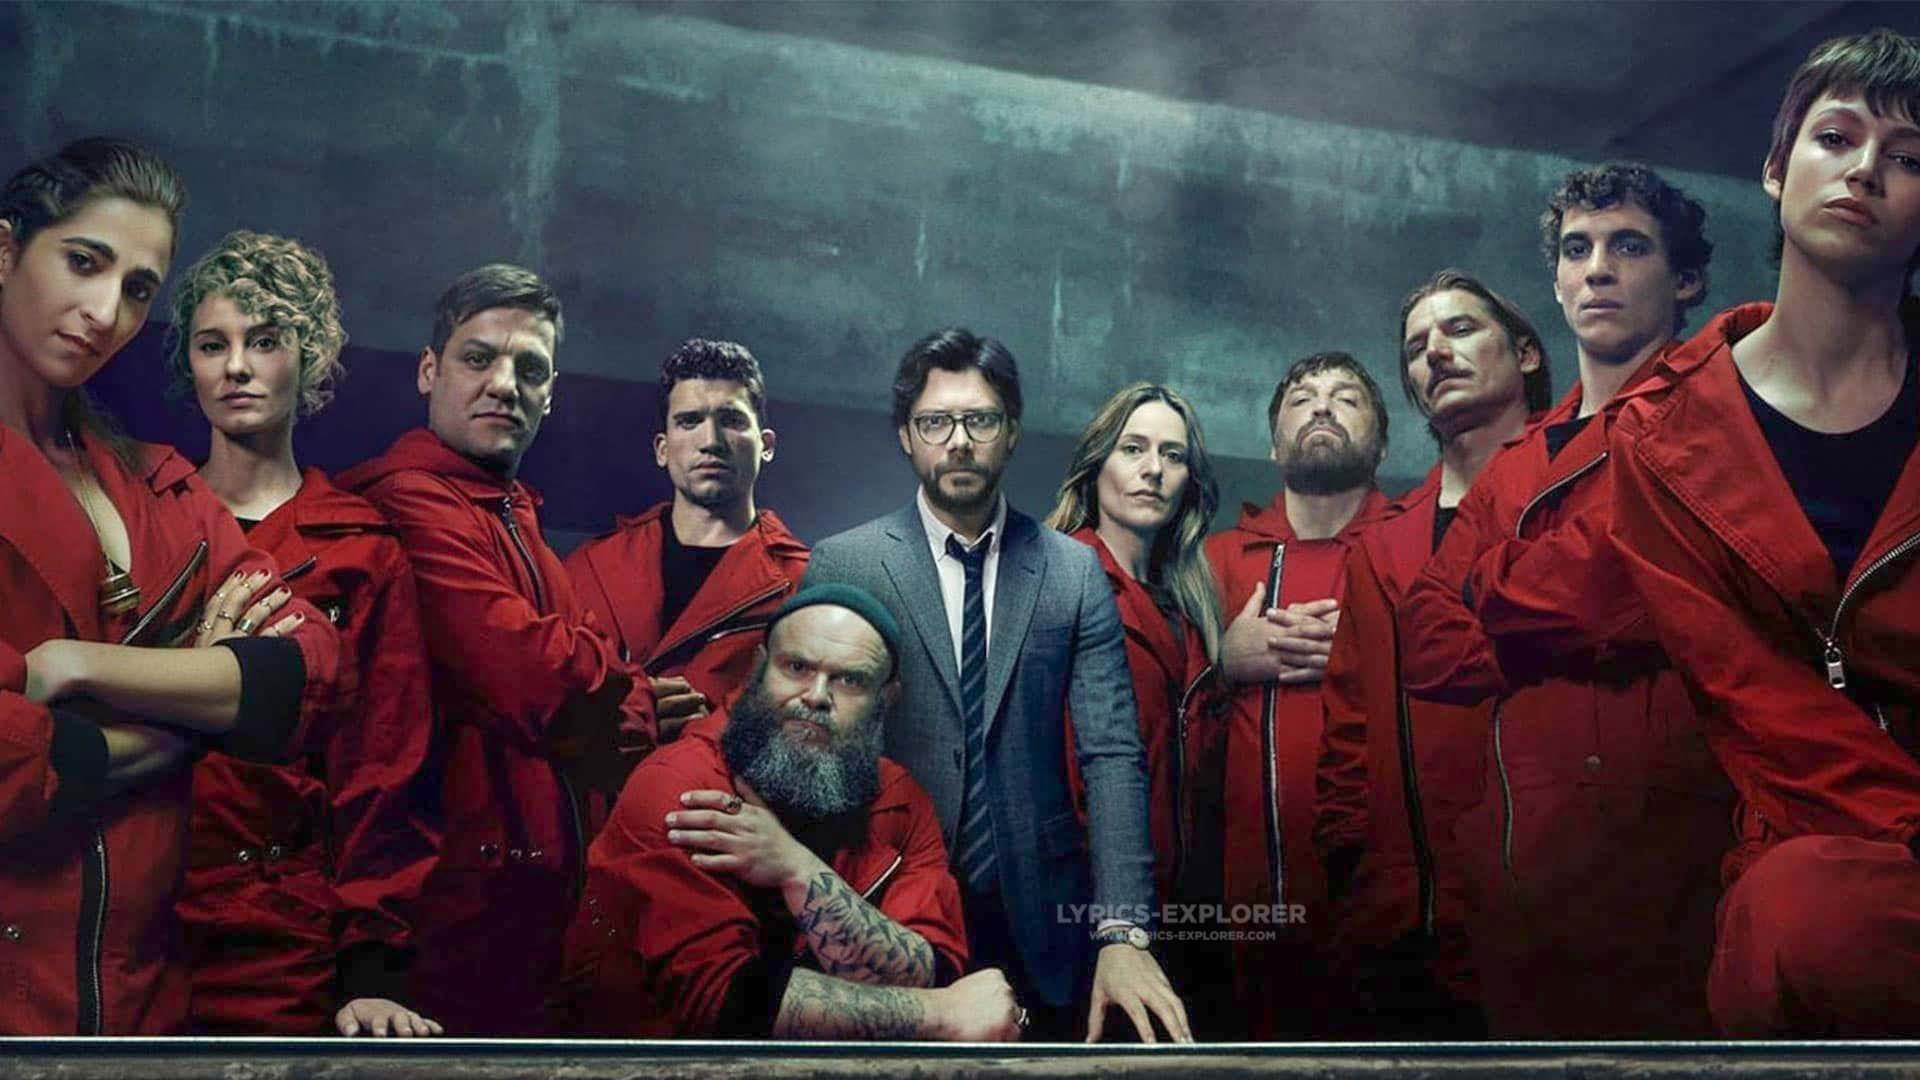 You are currently viewing Money heist Bella ciao ciao ciao in Lyrics Tamil